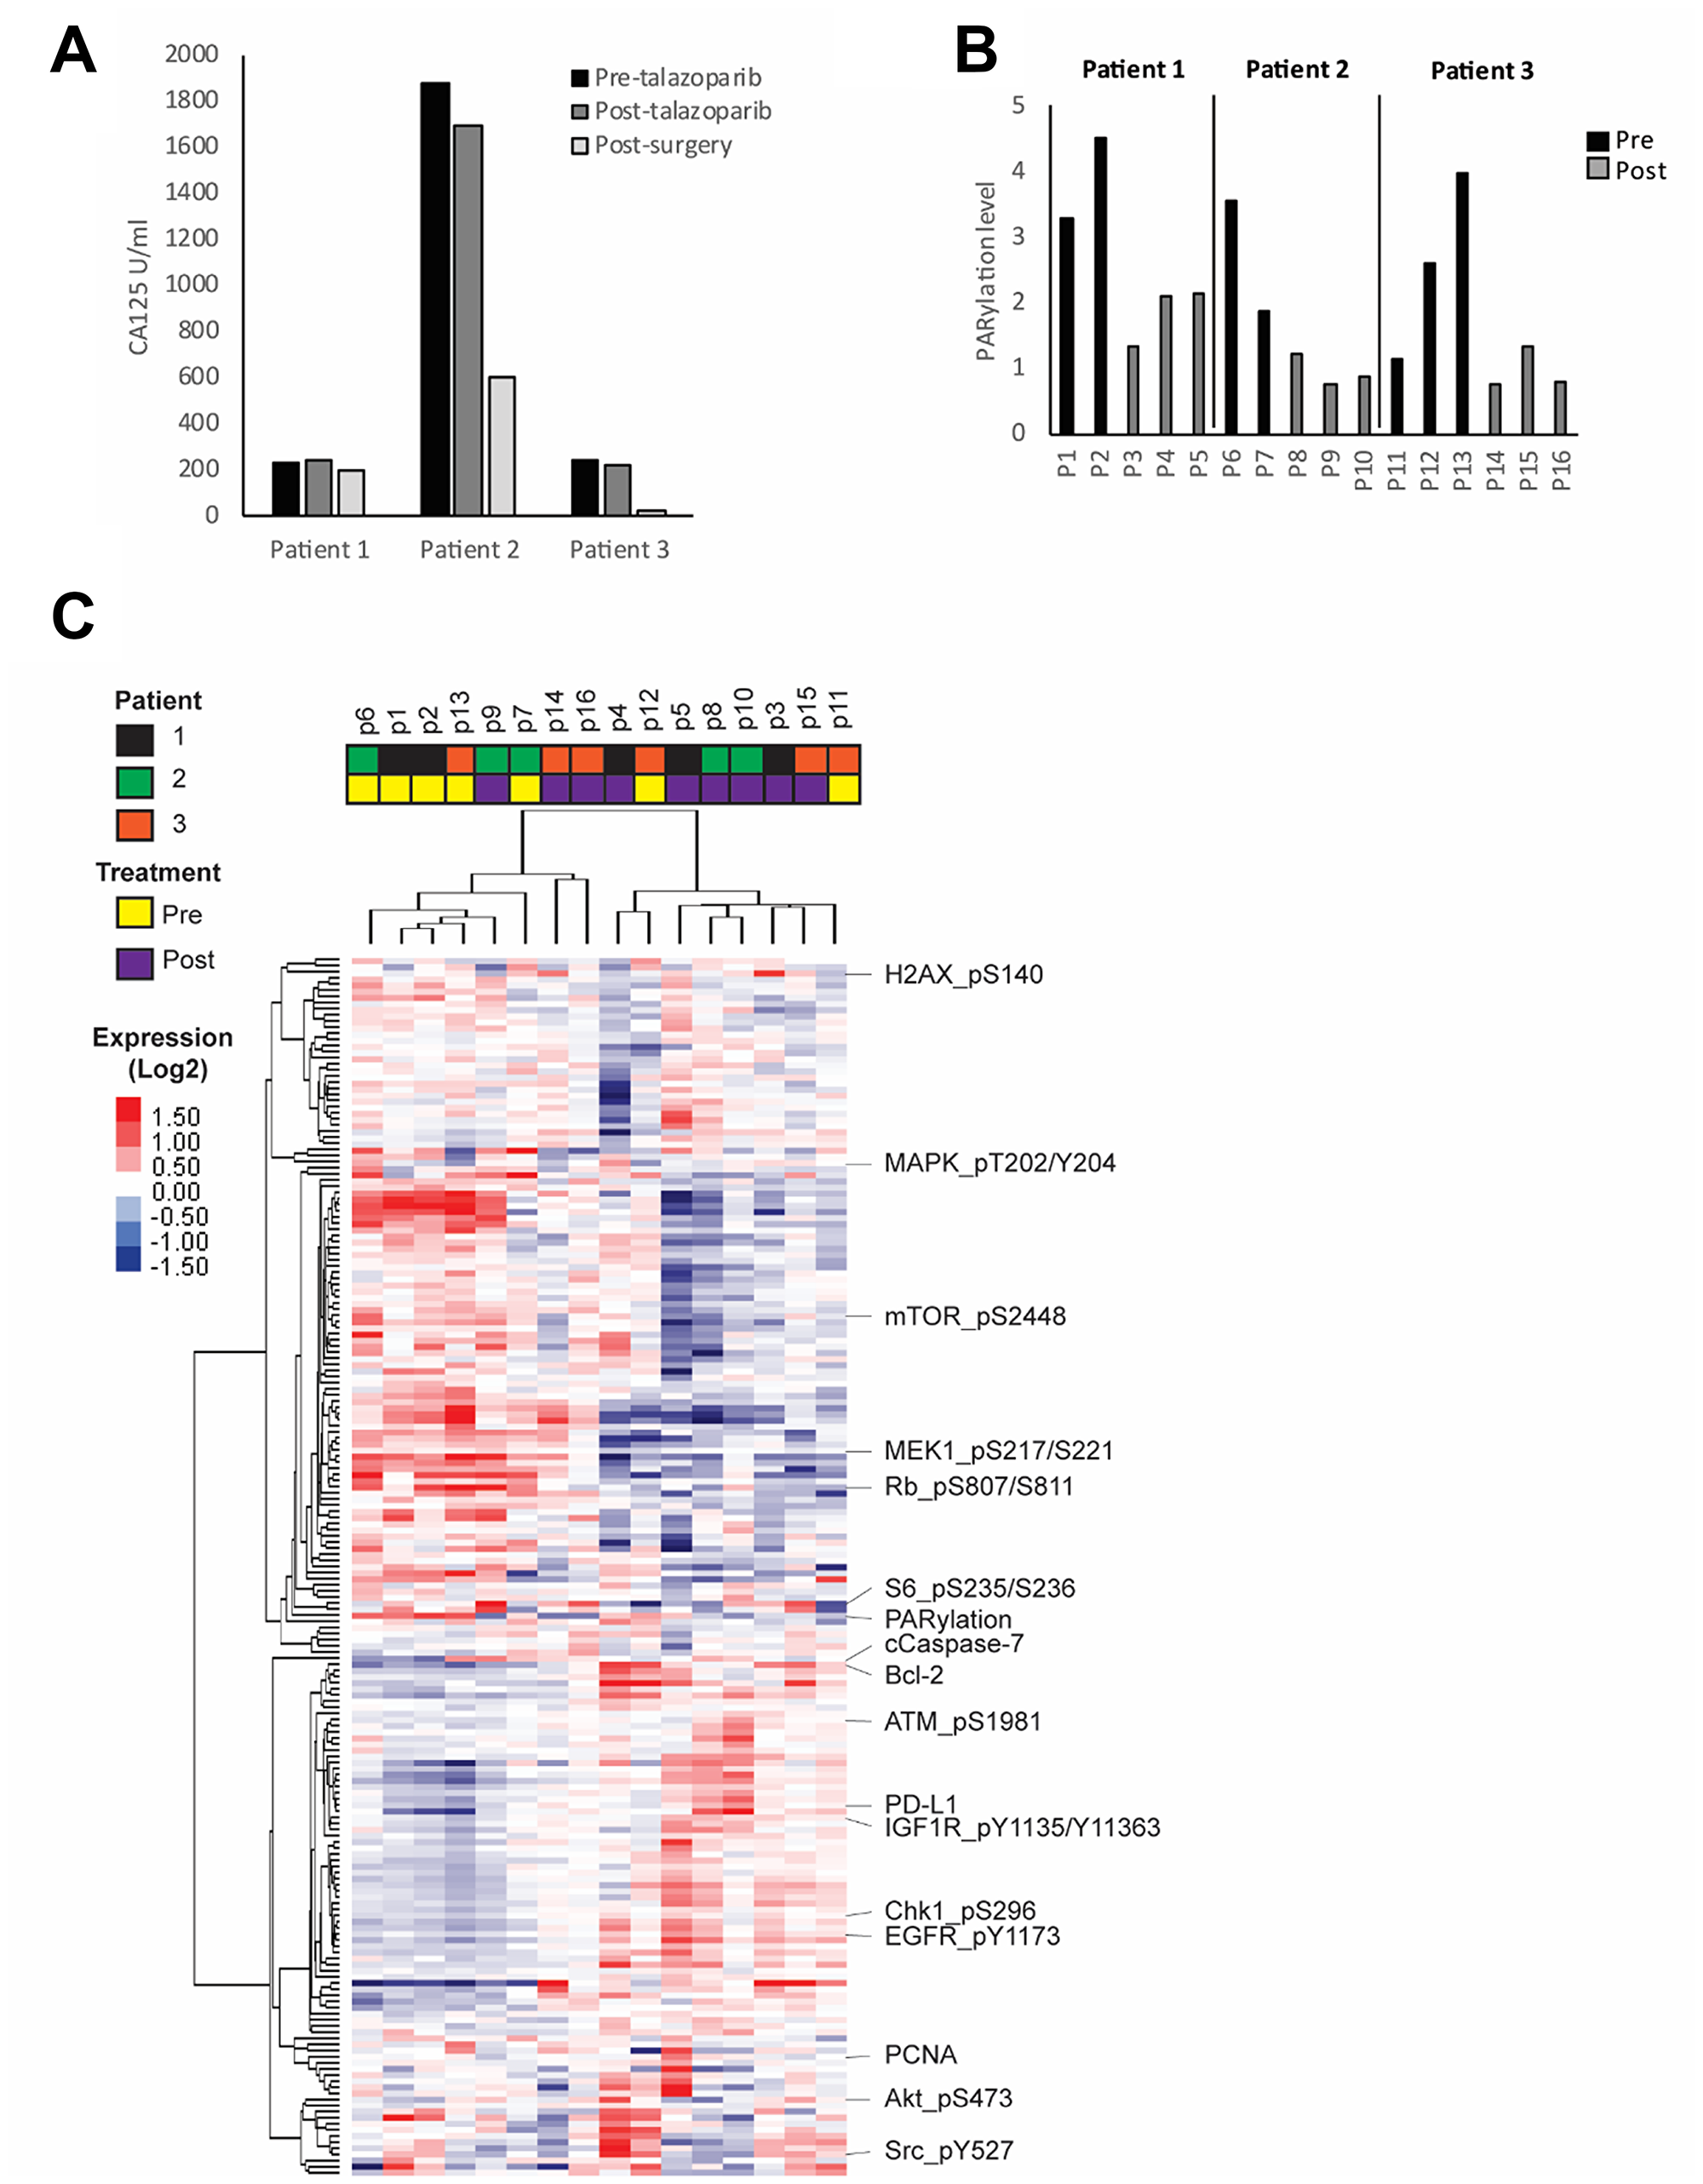 Oncotarget | Adaptive responses in a PARP inhibitor window